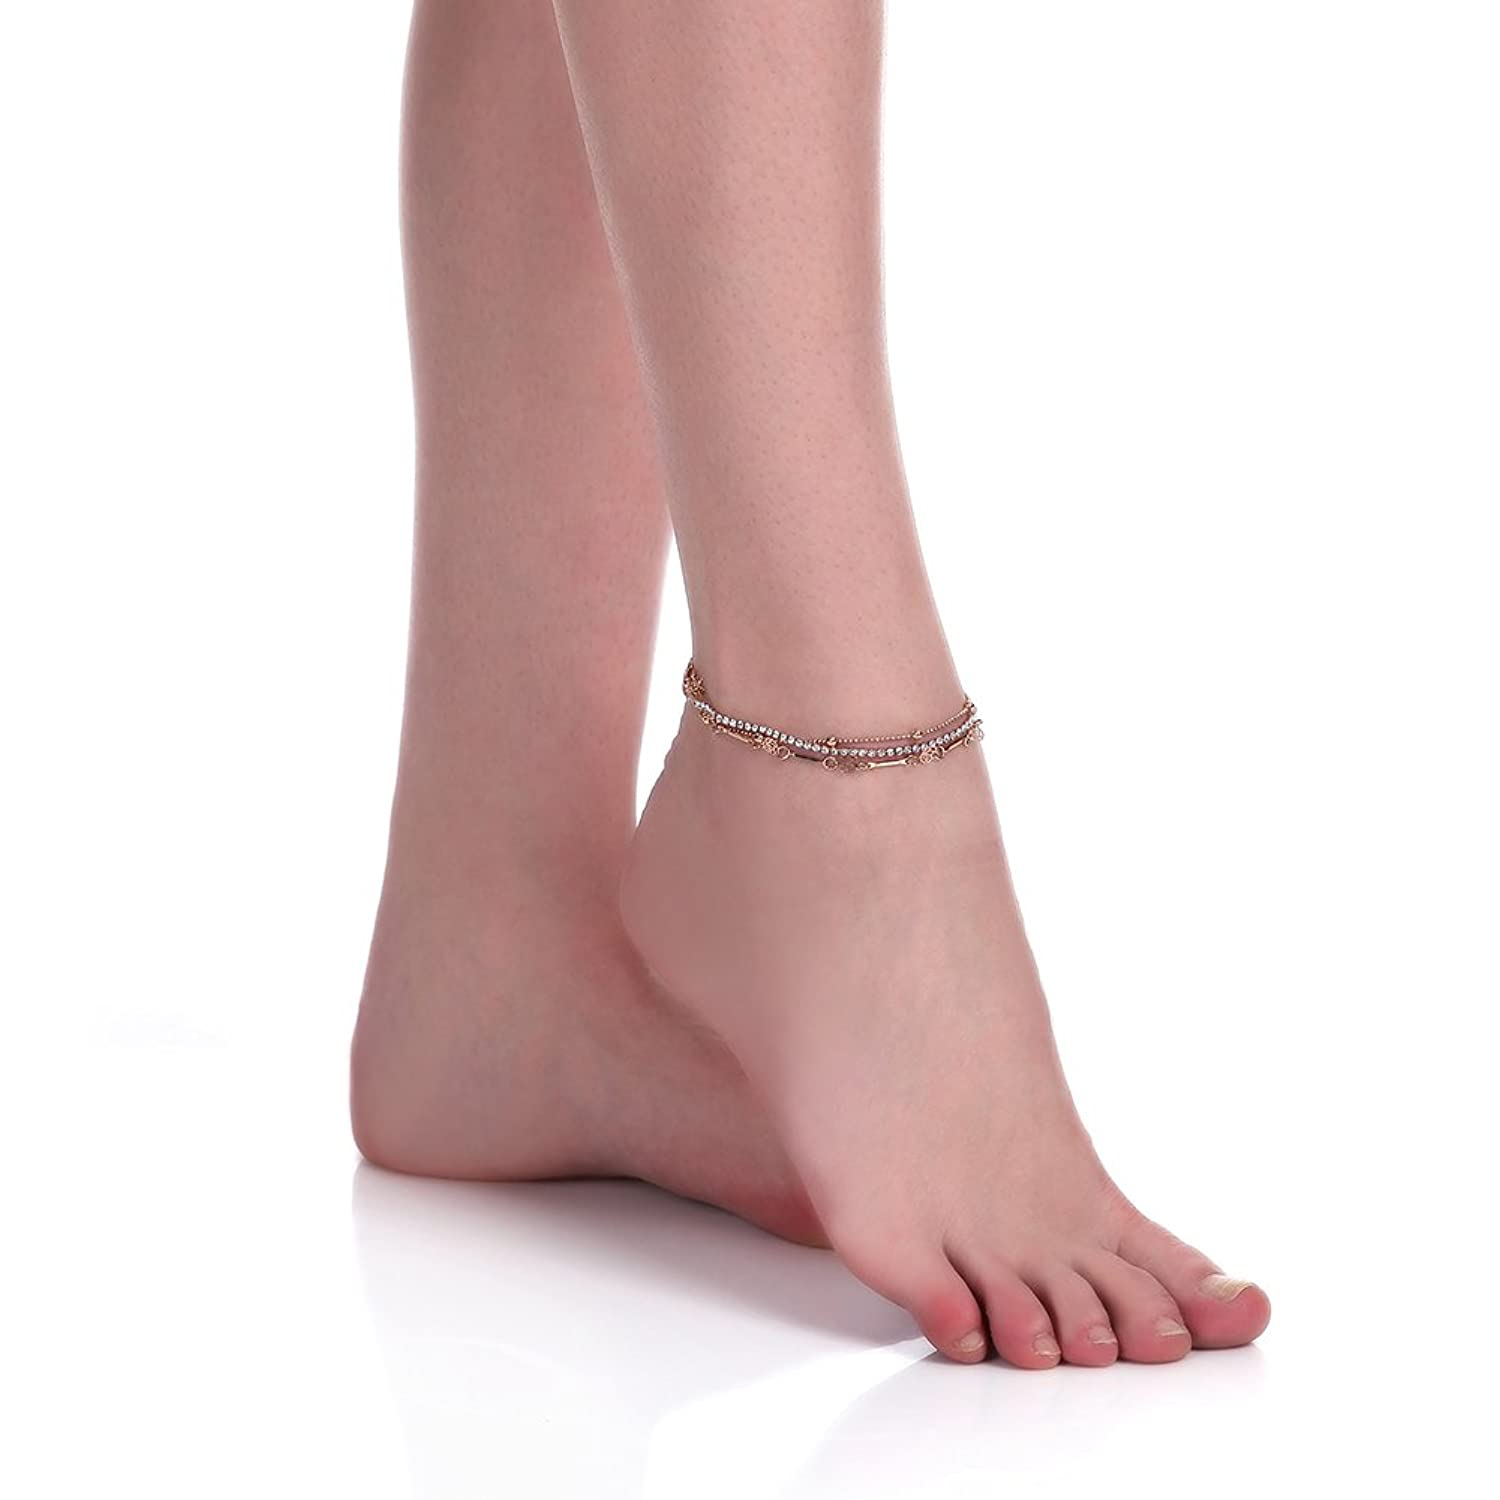 LUREME Sexy Gold Double Chain Crystal Anklet Bracelet Anklet Foot Jewelry Barefoot Beach Anklet (bl003083)